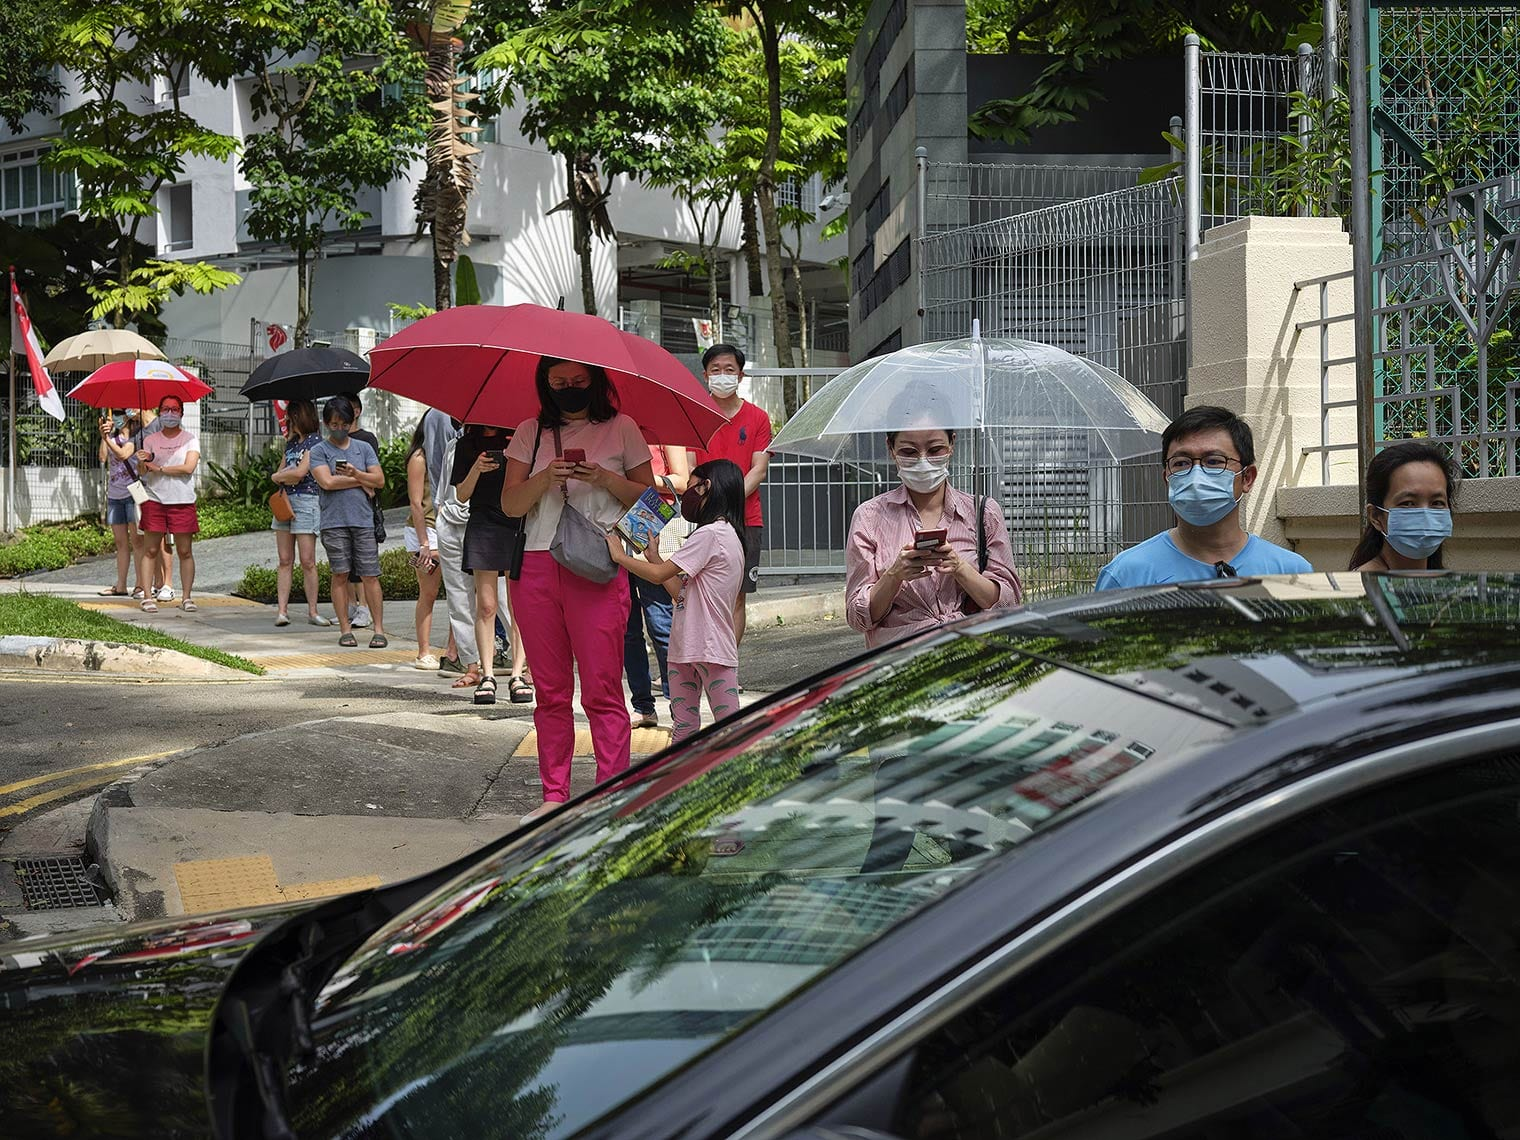 People wearing masks and standing under umbrellas wait in a socially distanced line on a tree-lined city street